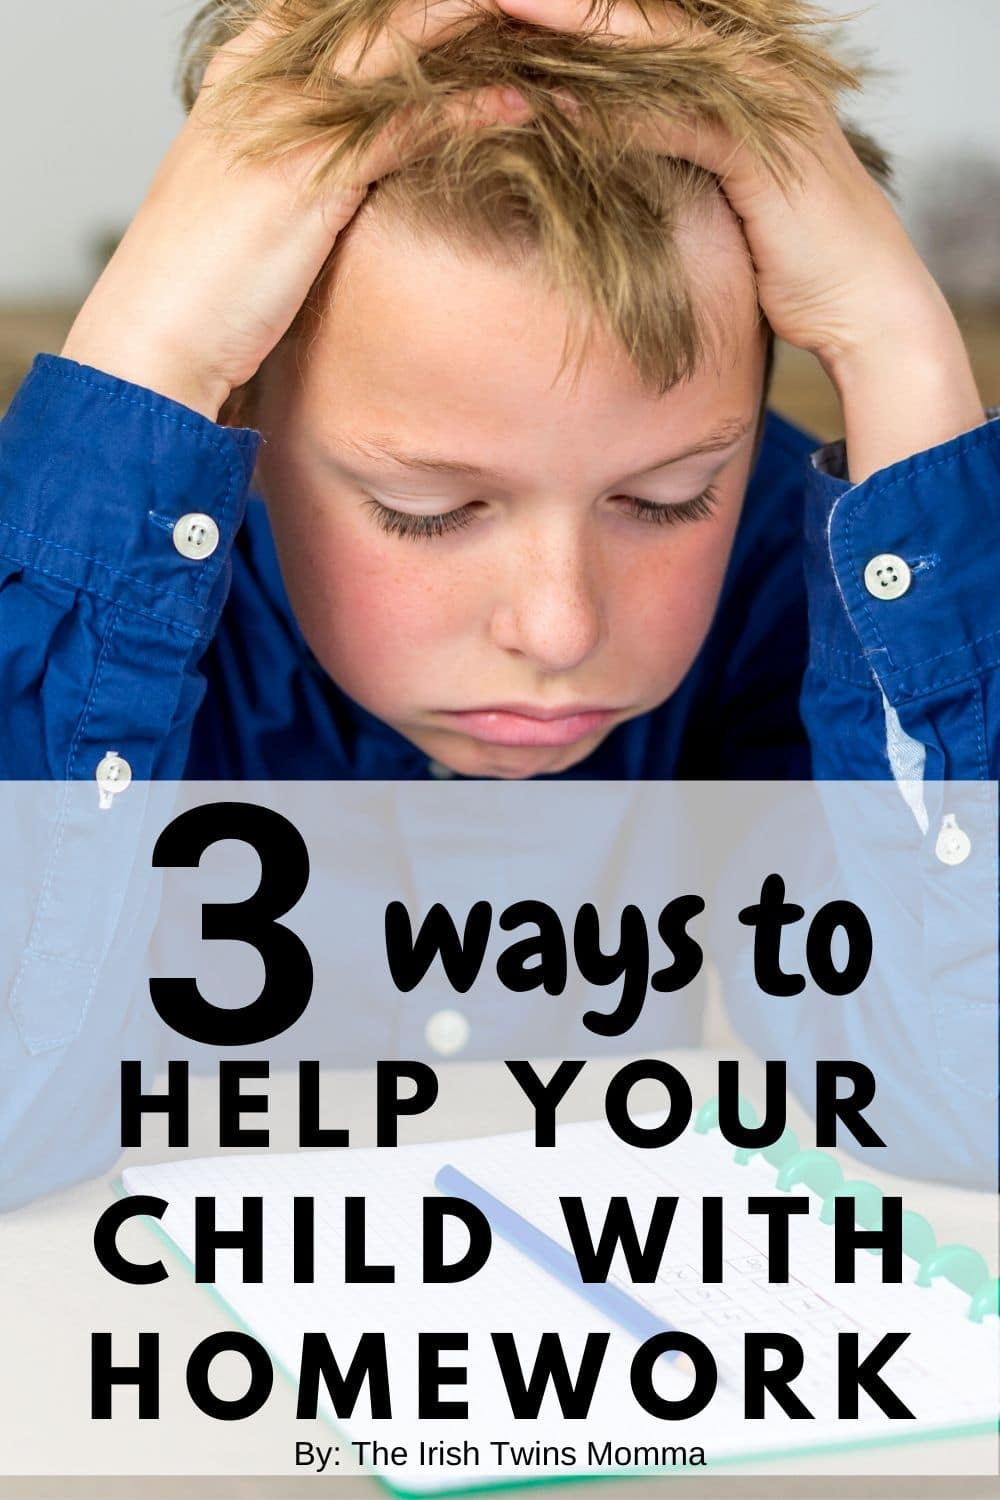 You are an integral part of your child's education and will have a direct impact on the knowledge and skills that he gains. Helping with homework can set them up for success.  via @irishtwinsmom11